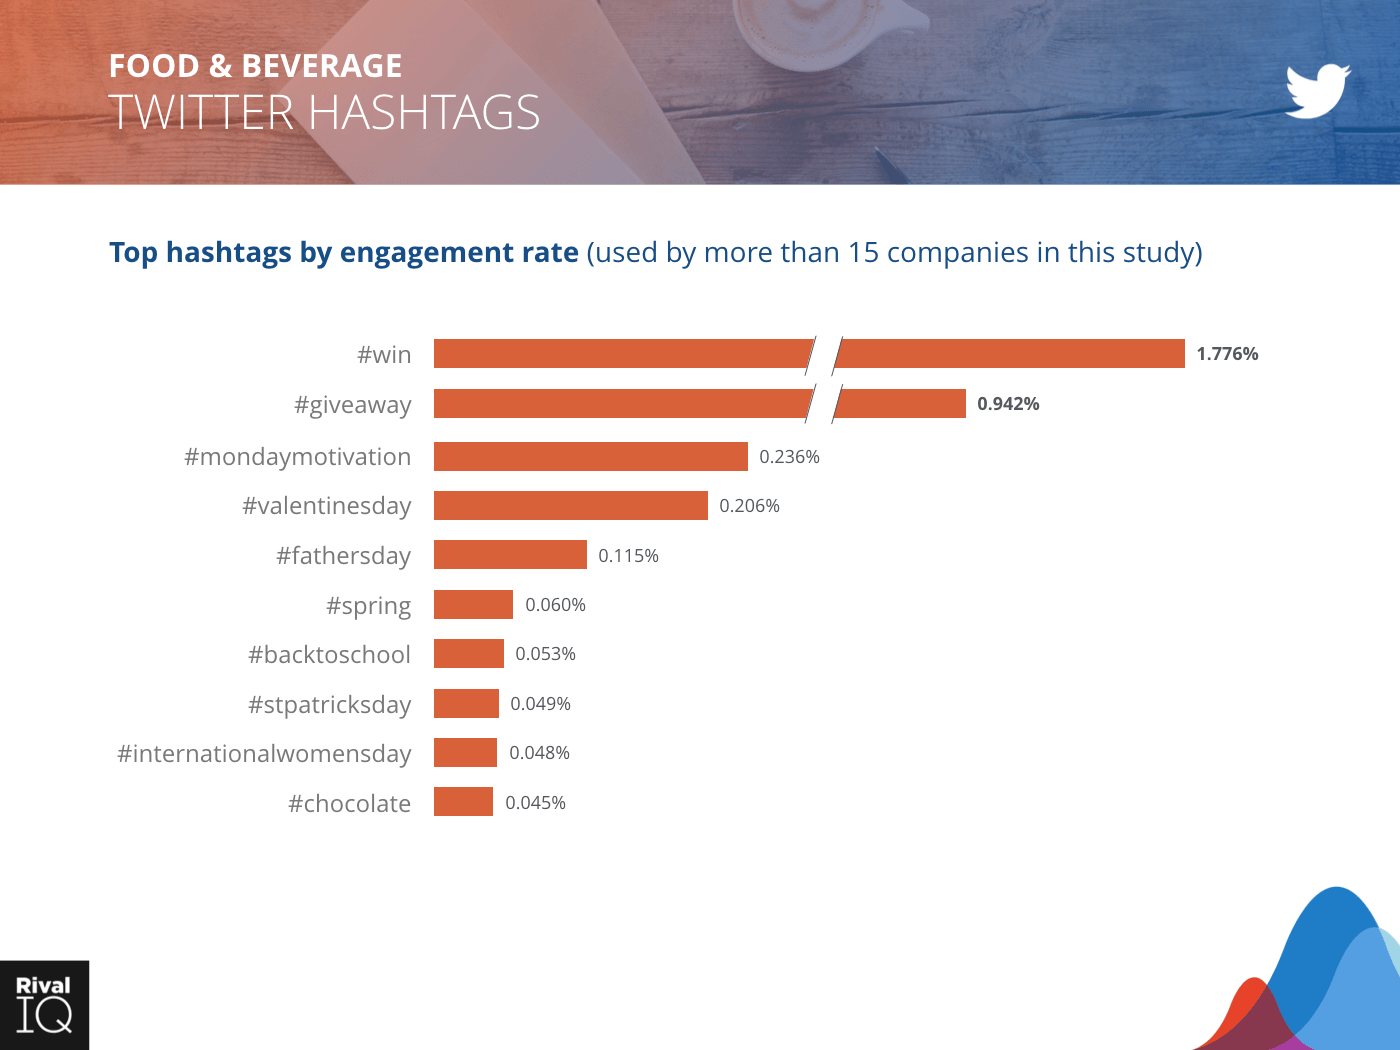 Food & Beverage Industry: bar graph, hashtags by engagement rate on Twitter